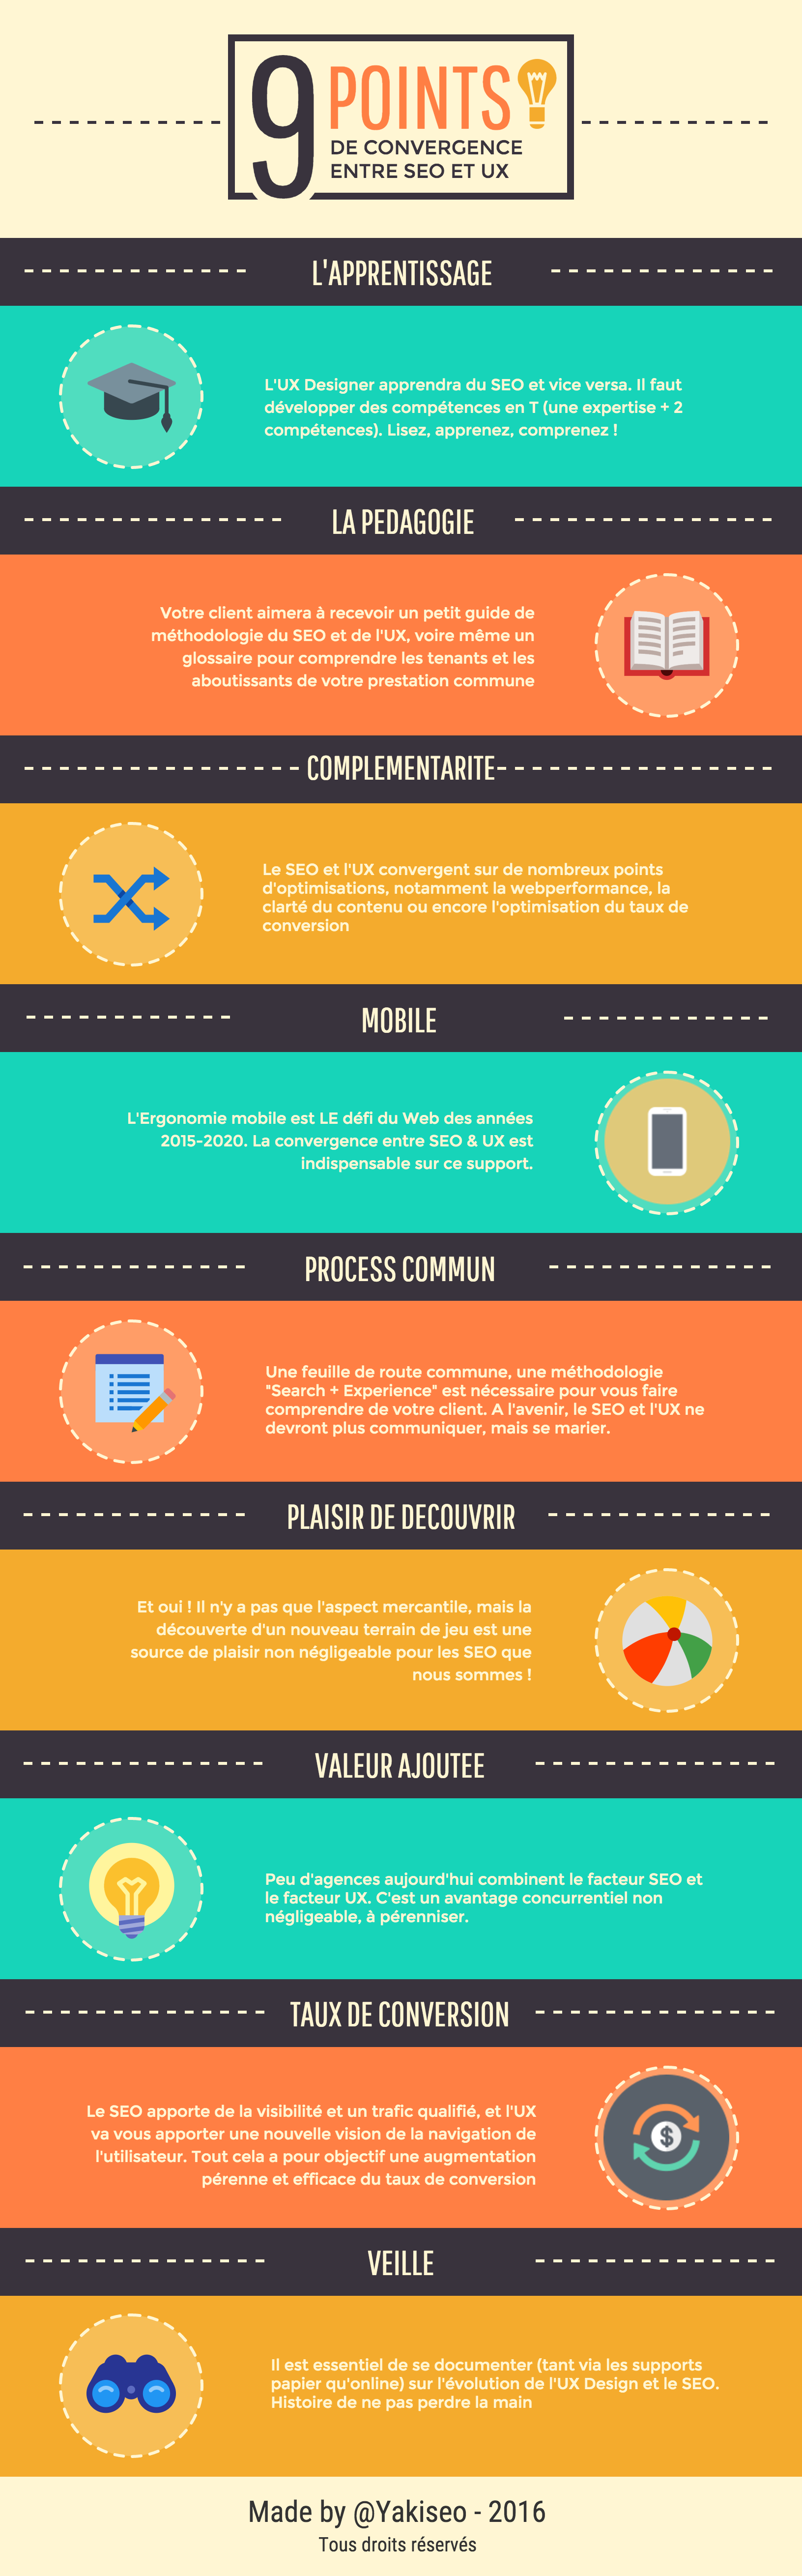 infographie-convergence-seo-ux